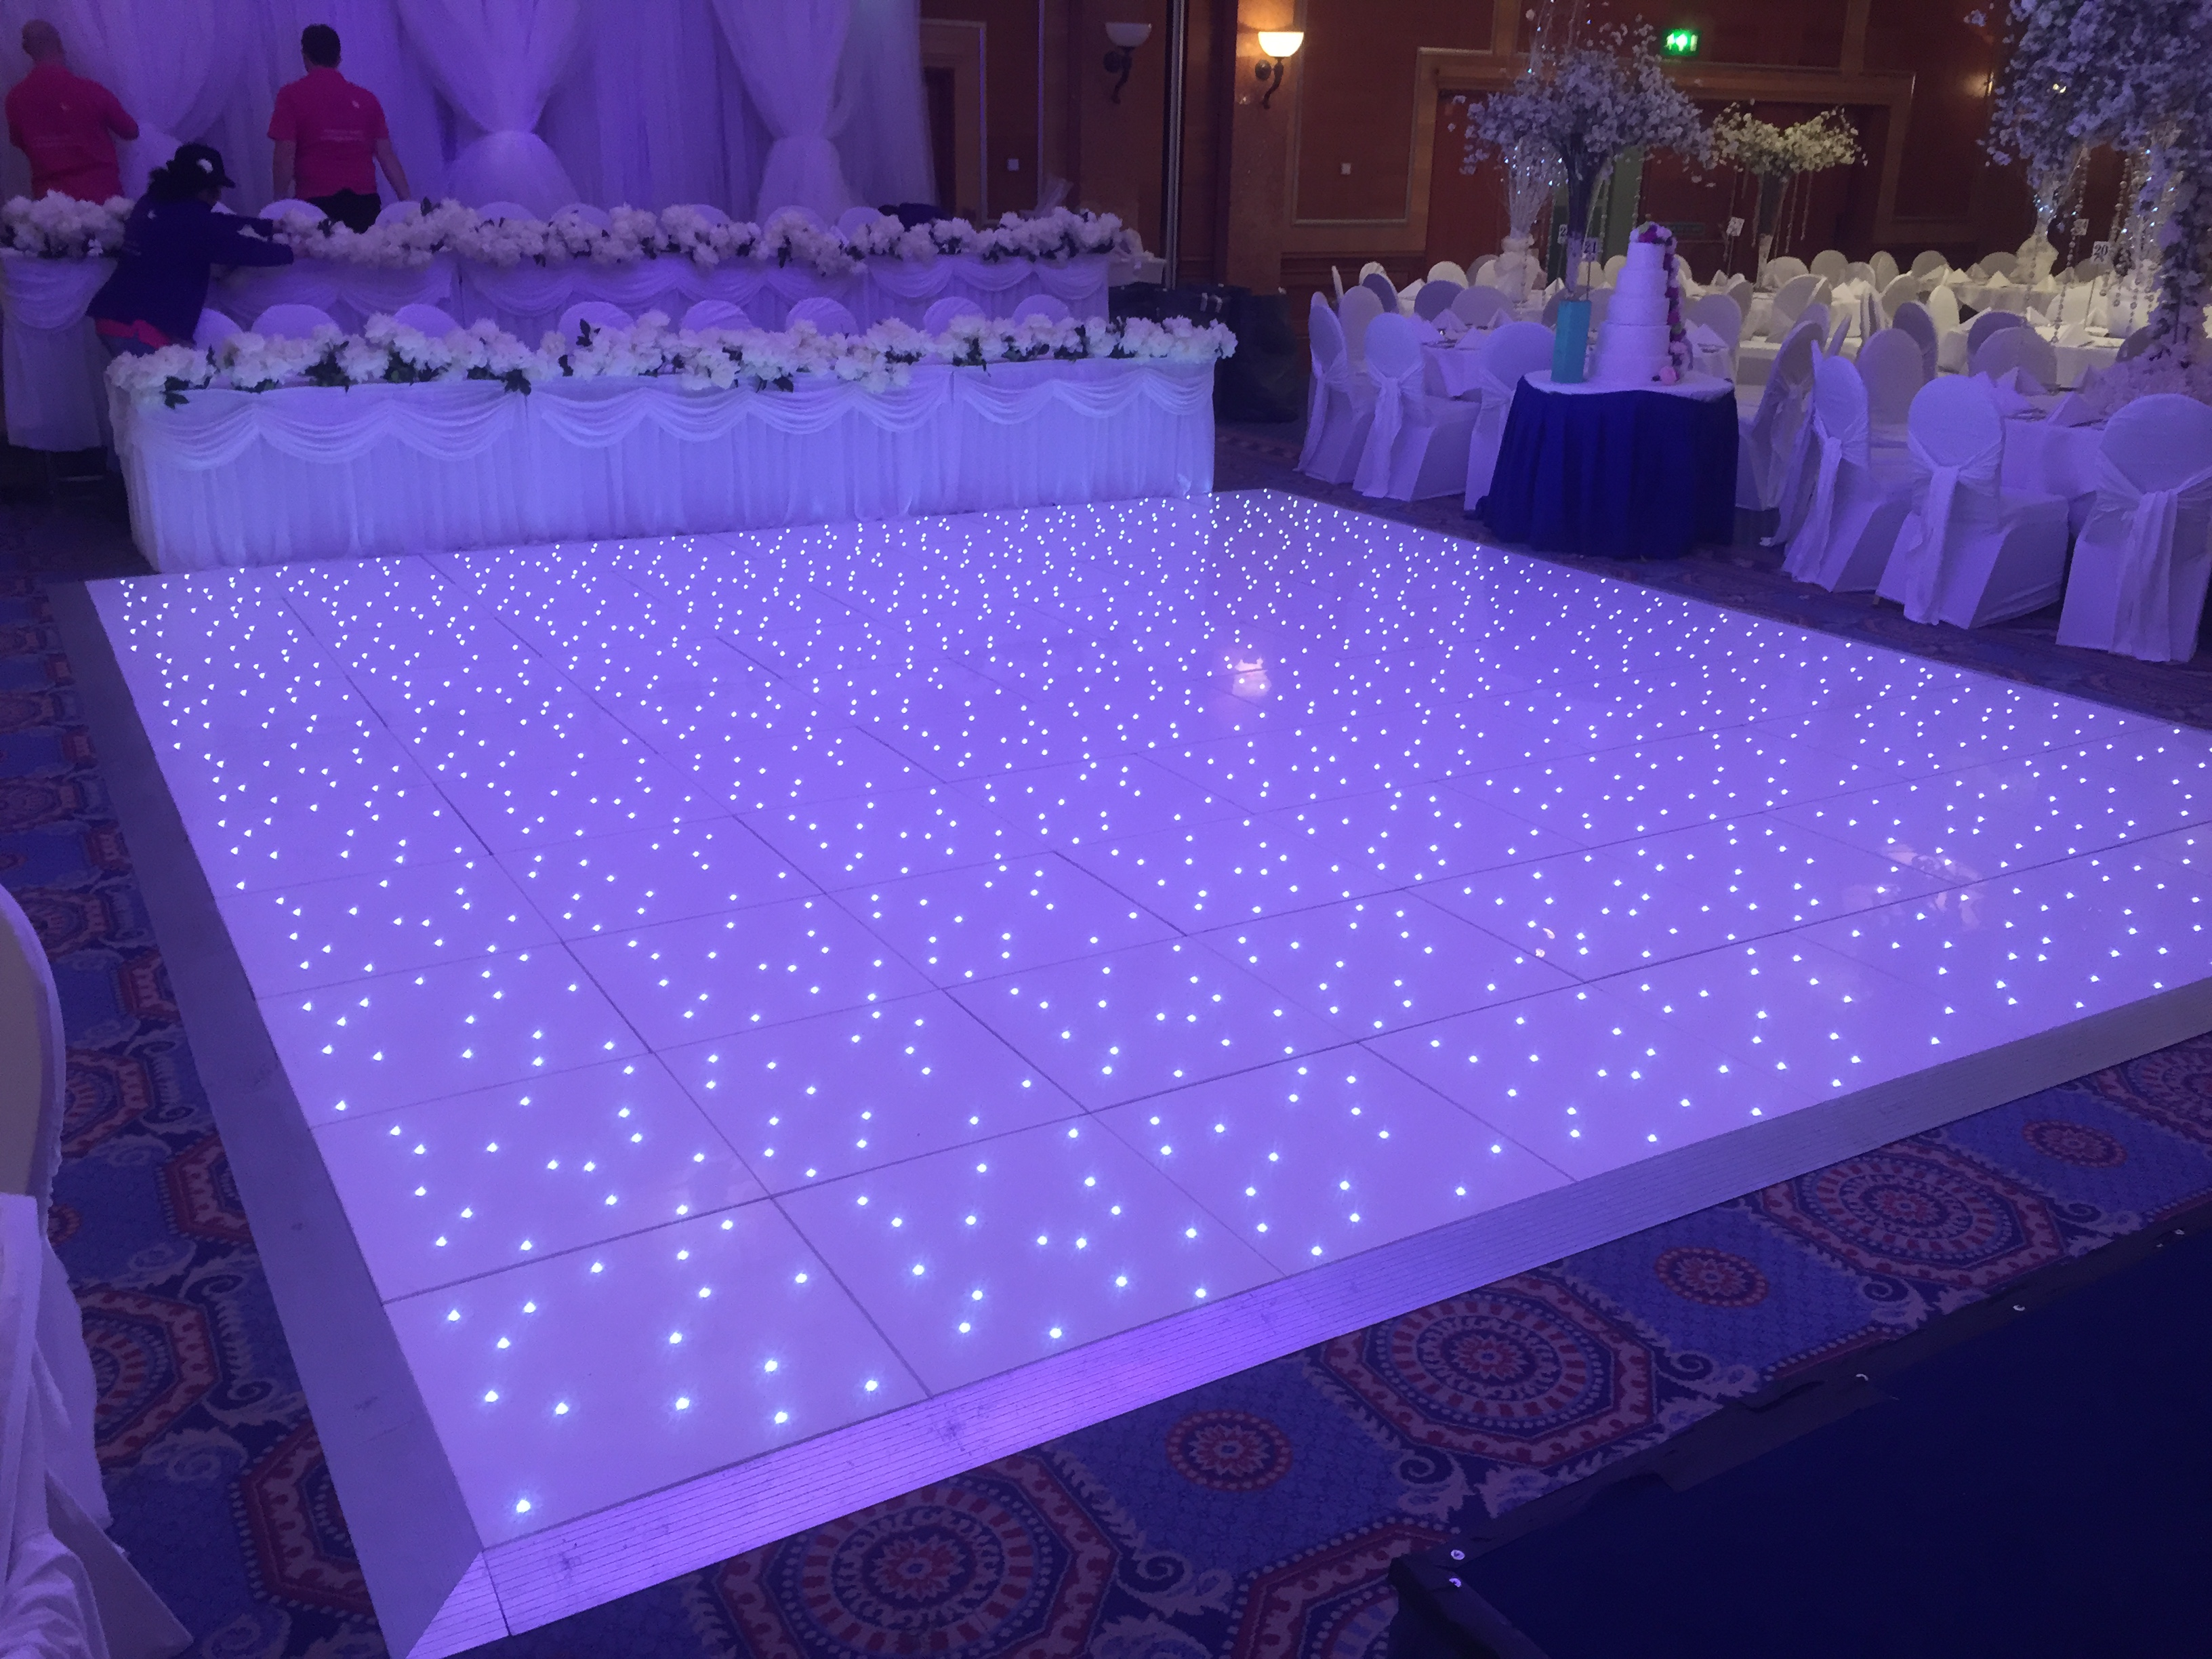 Large Lit up dance floor arrangement